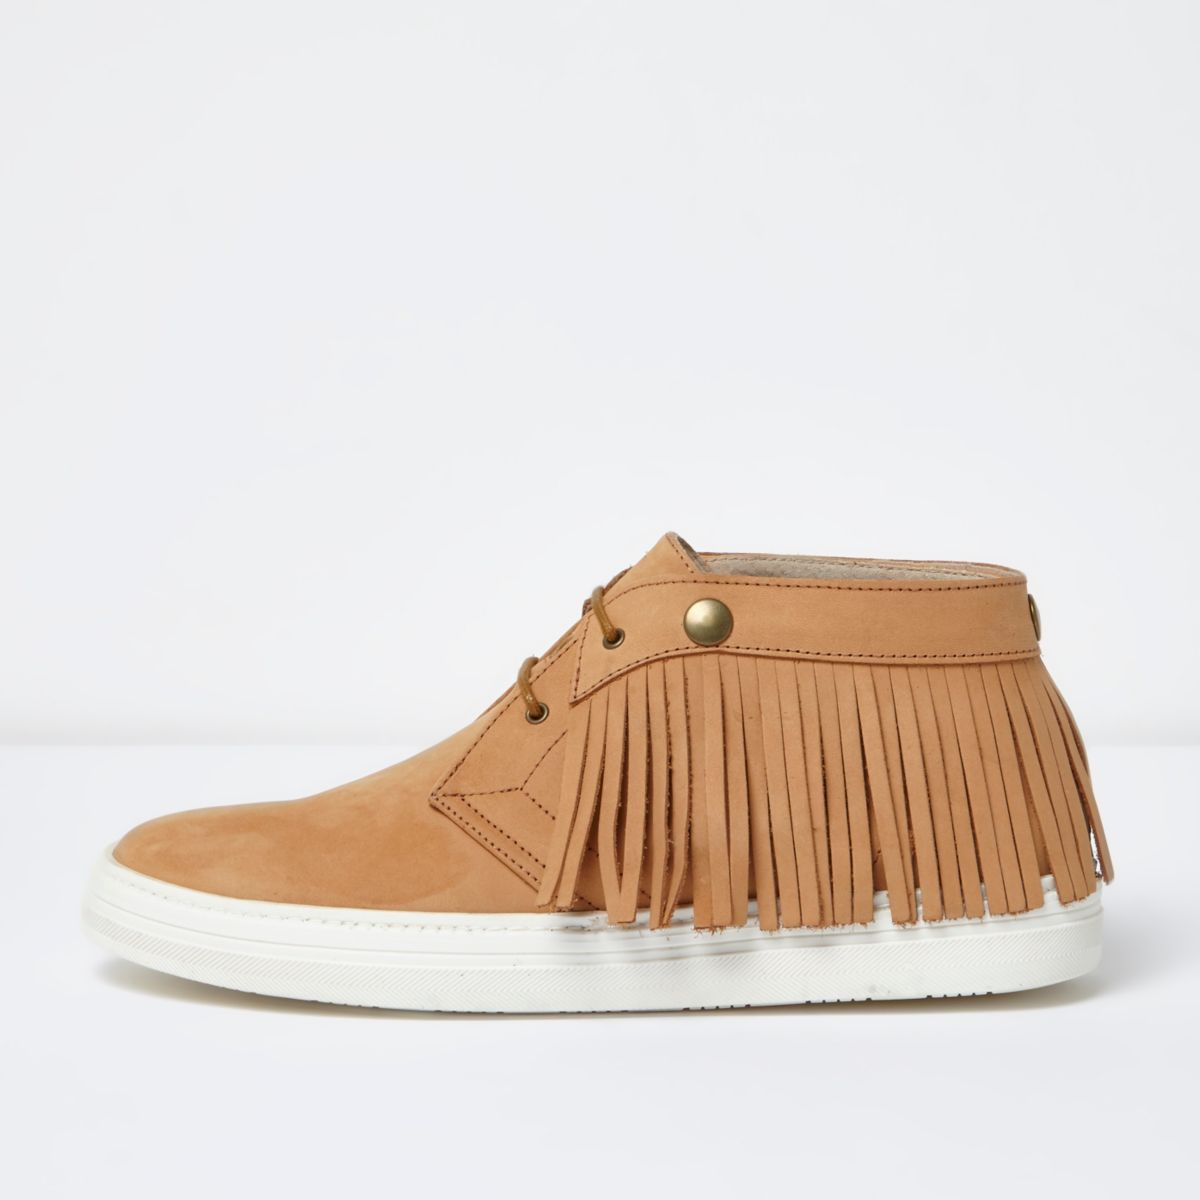 Tan leather fringed desert boots